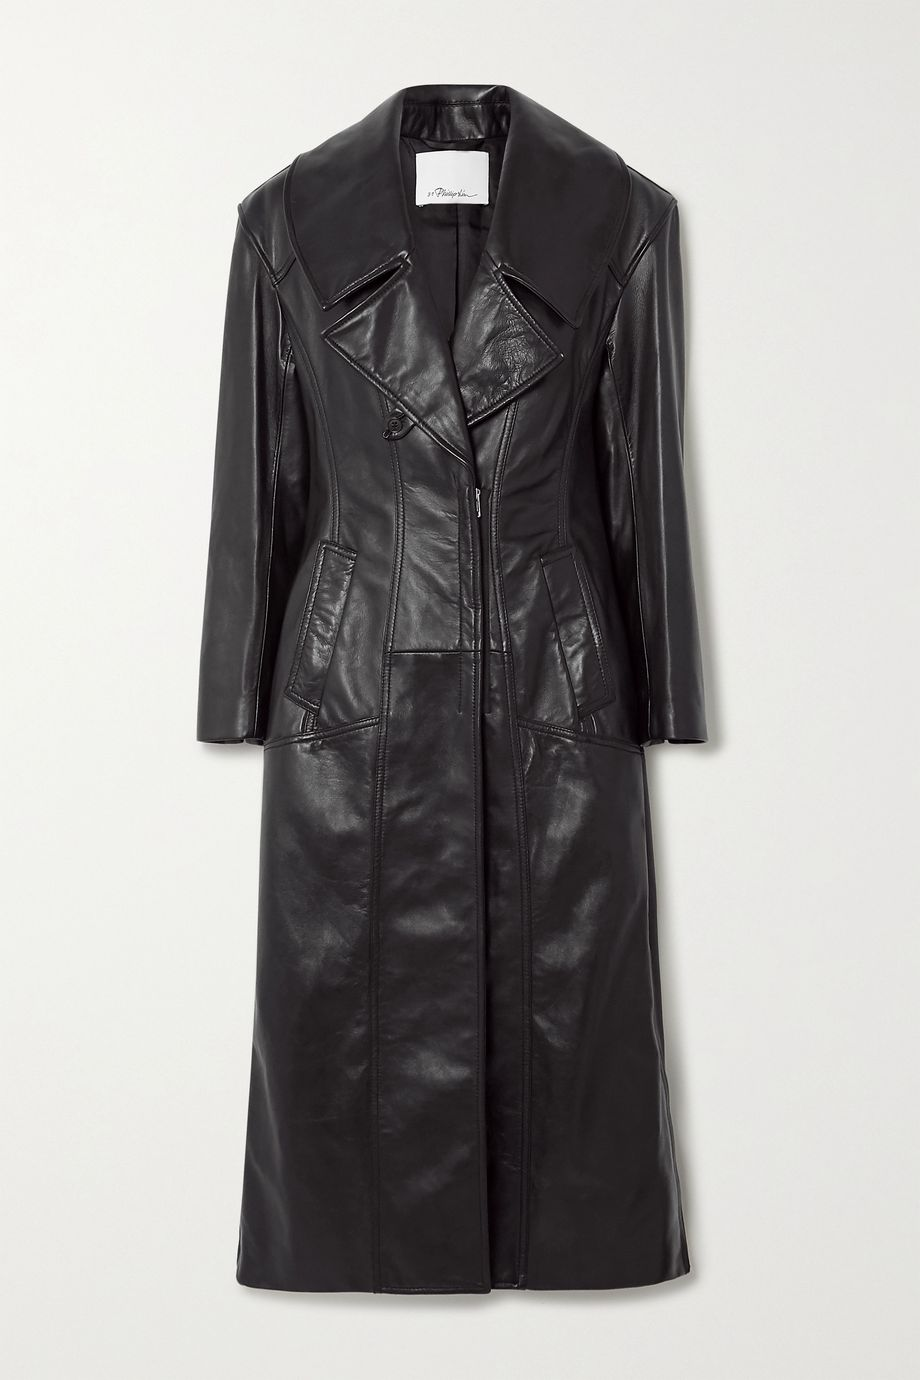 3.1 Phillip Lim Zip-detailed paneled leather coat